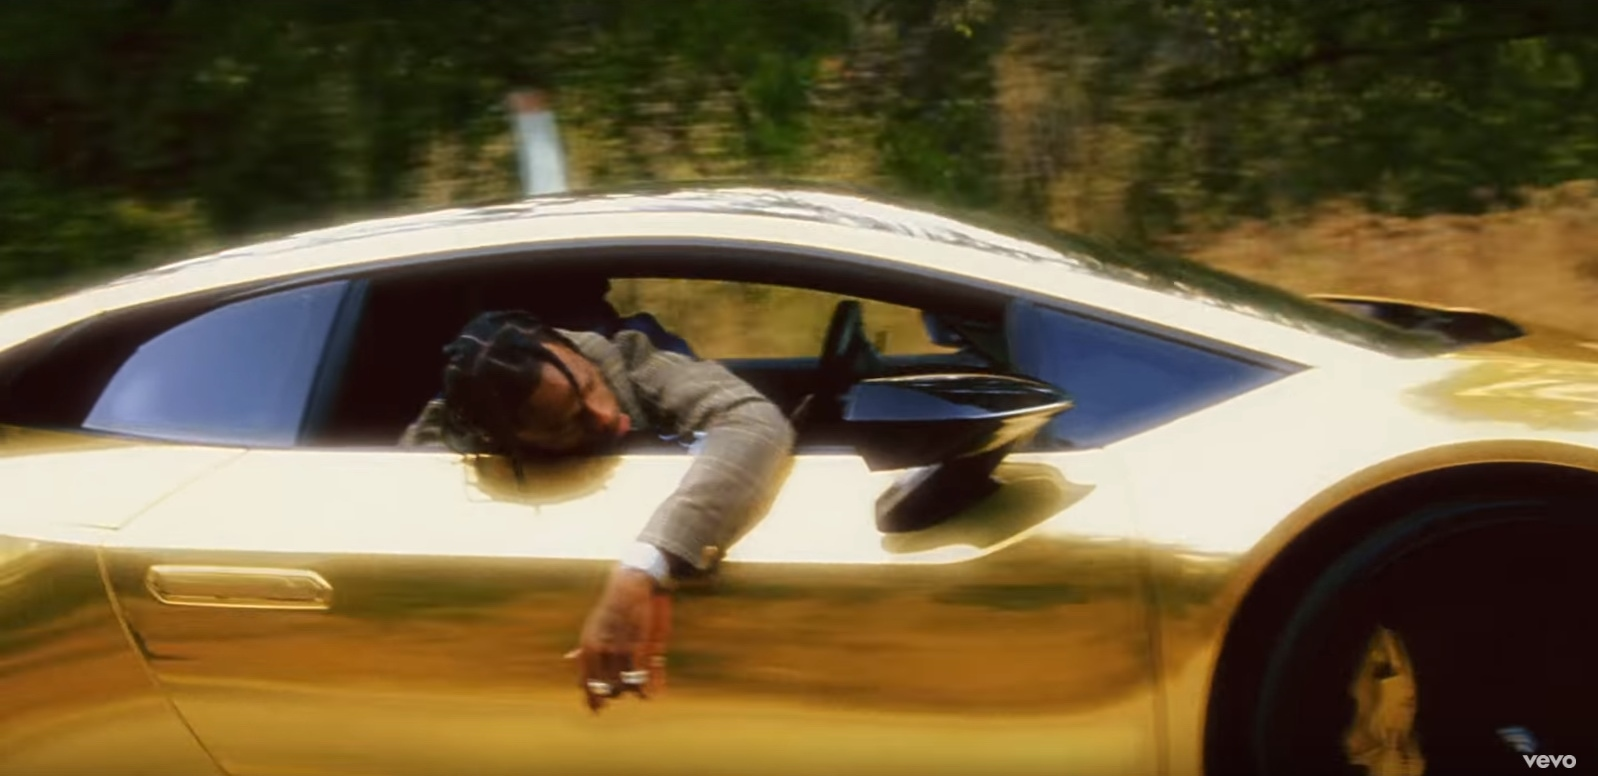 Gold Lamborghini Huracán - Travis Scott - Butterfly Effect Official Music Video Product Placement